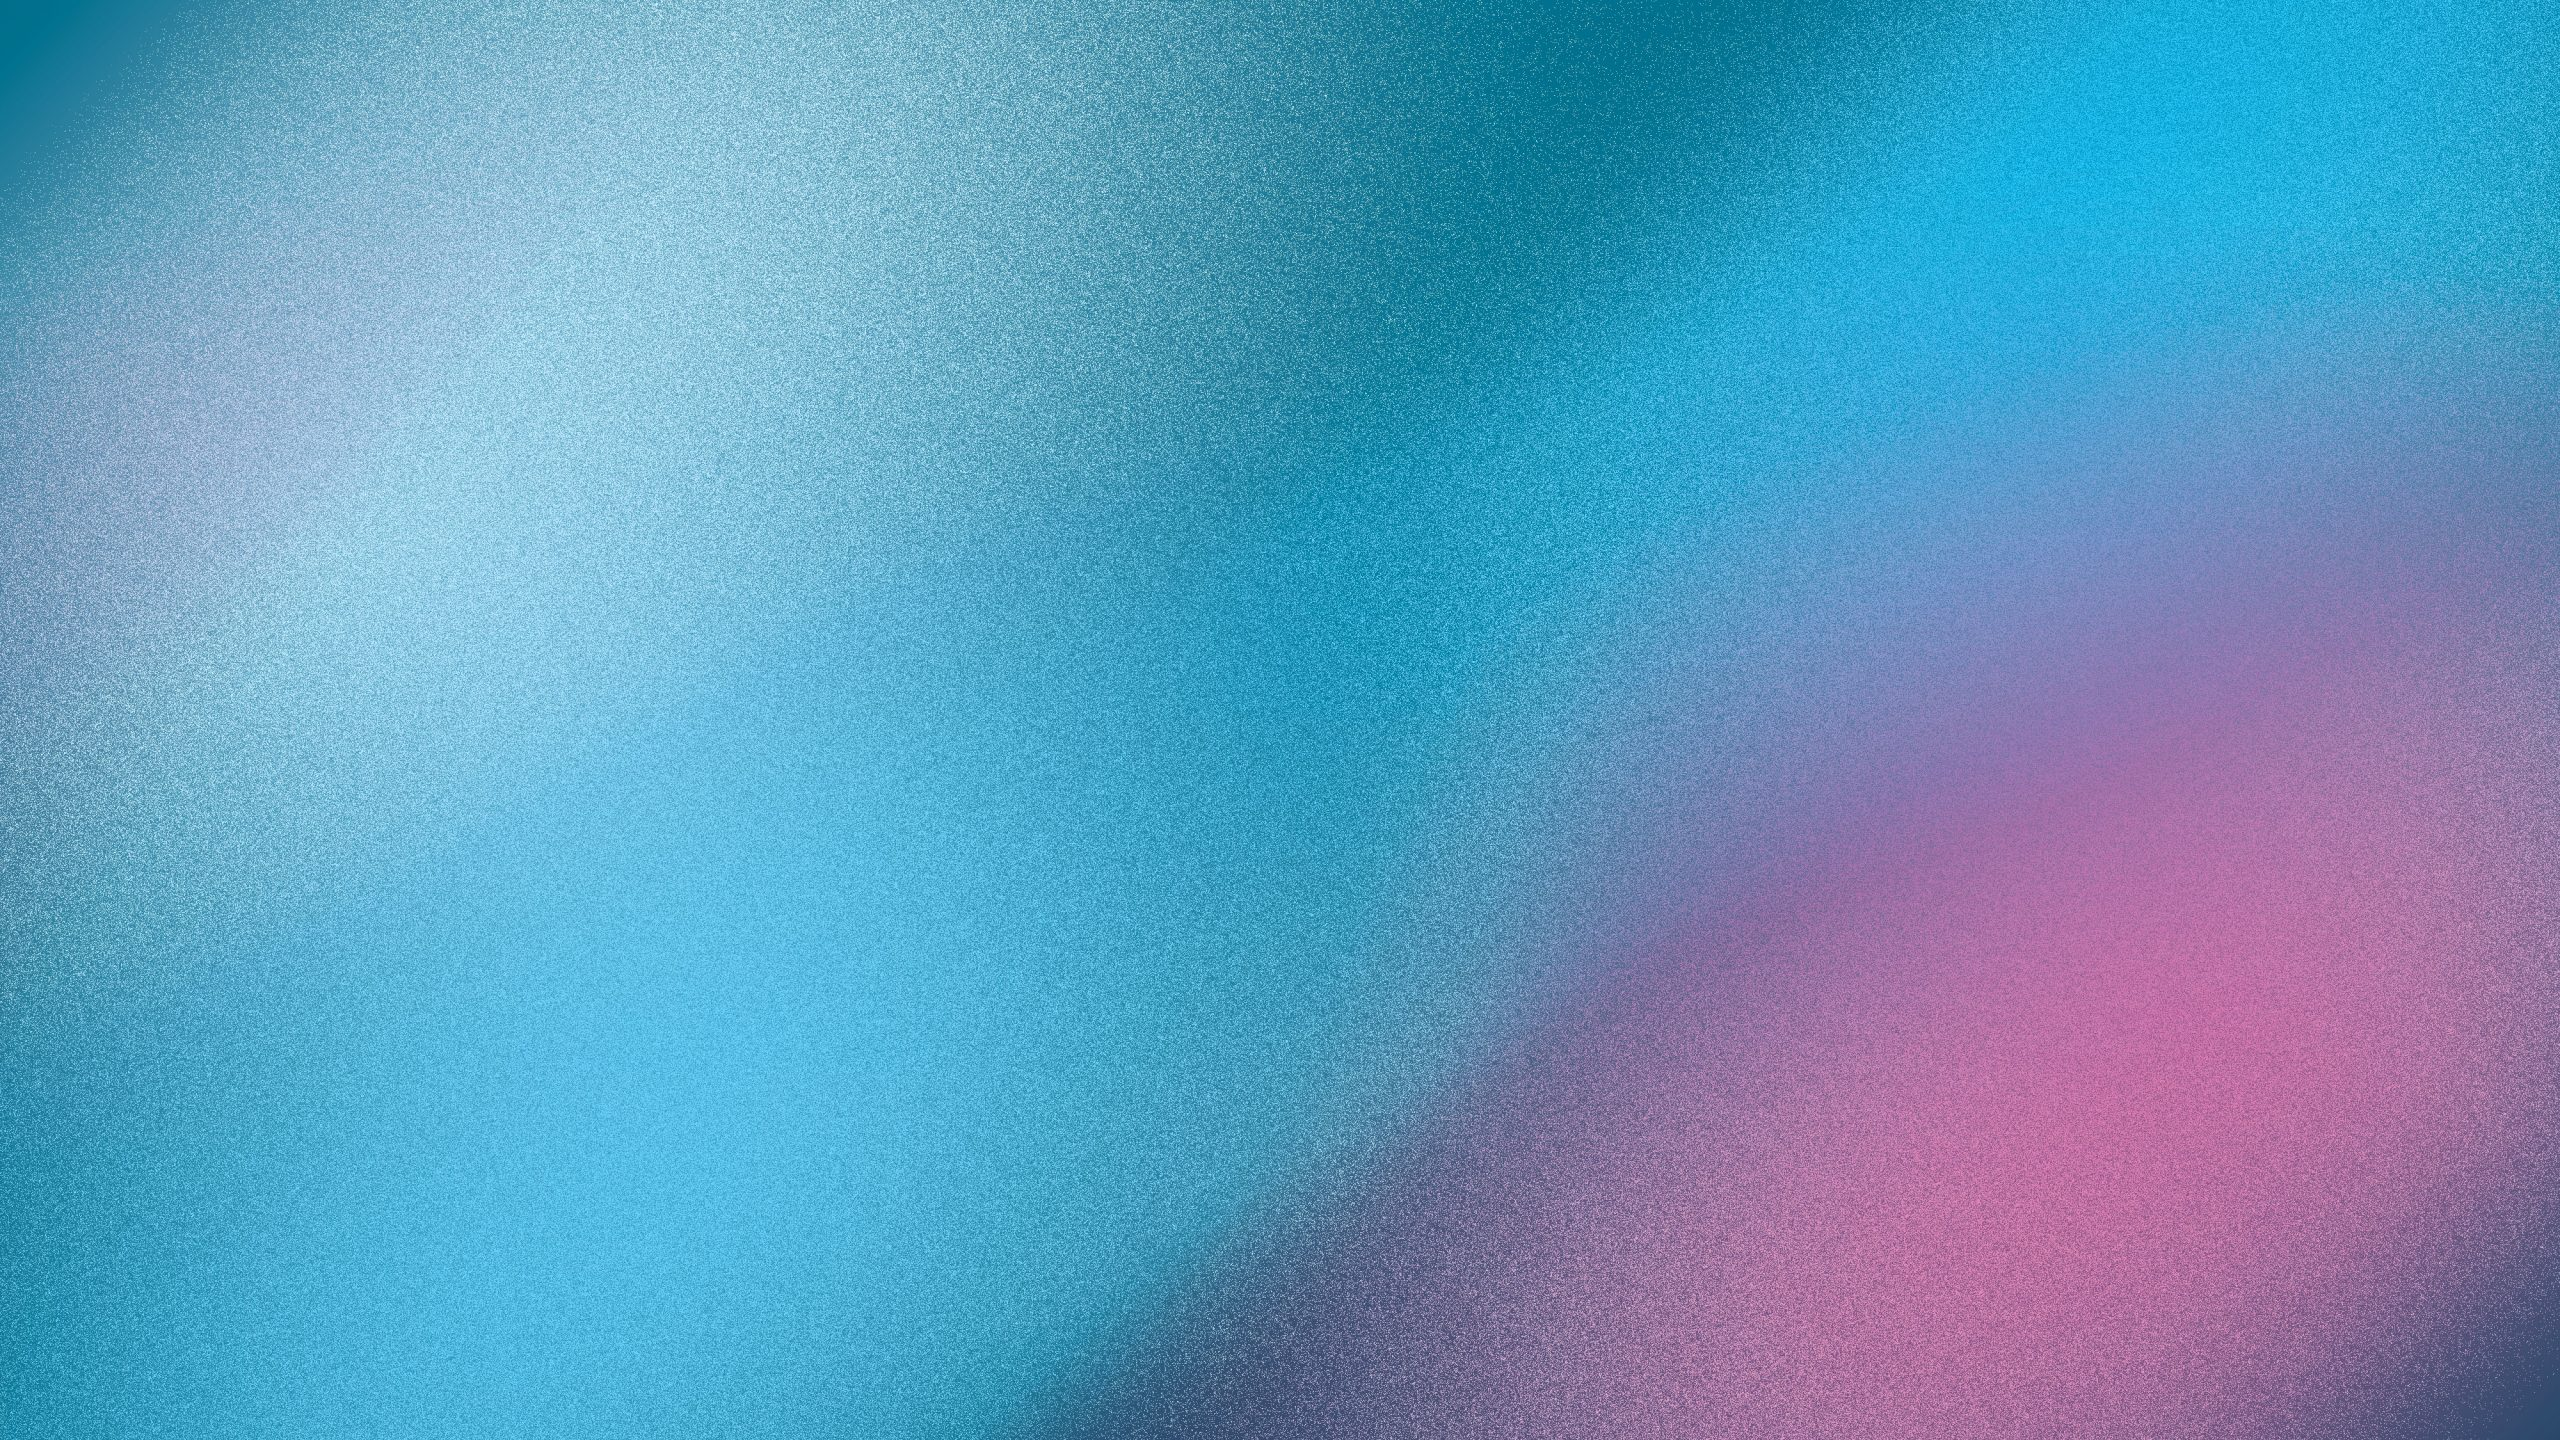 Pink colored abstract background